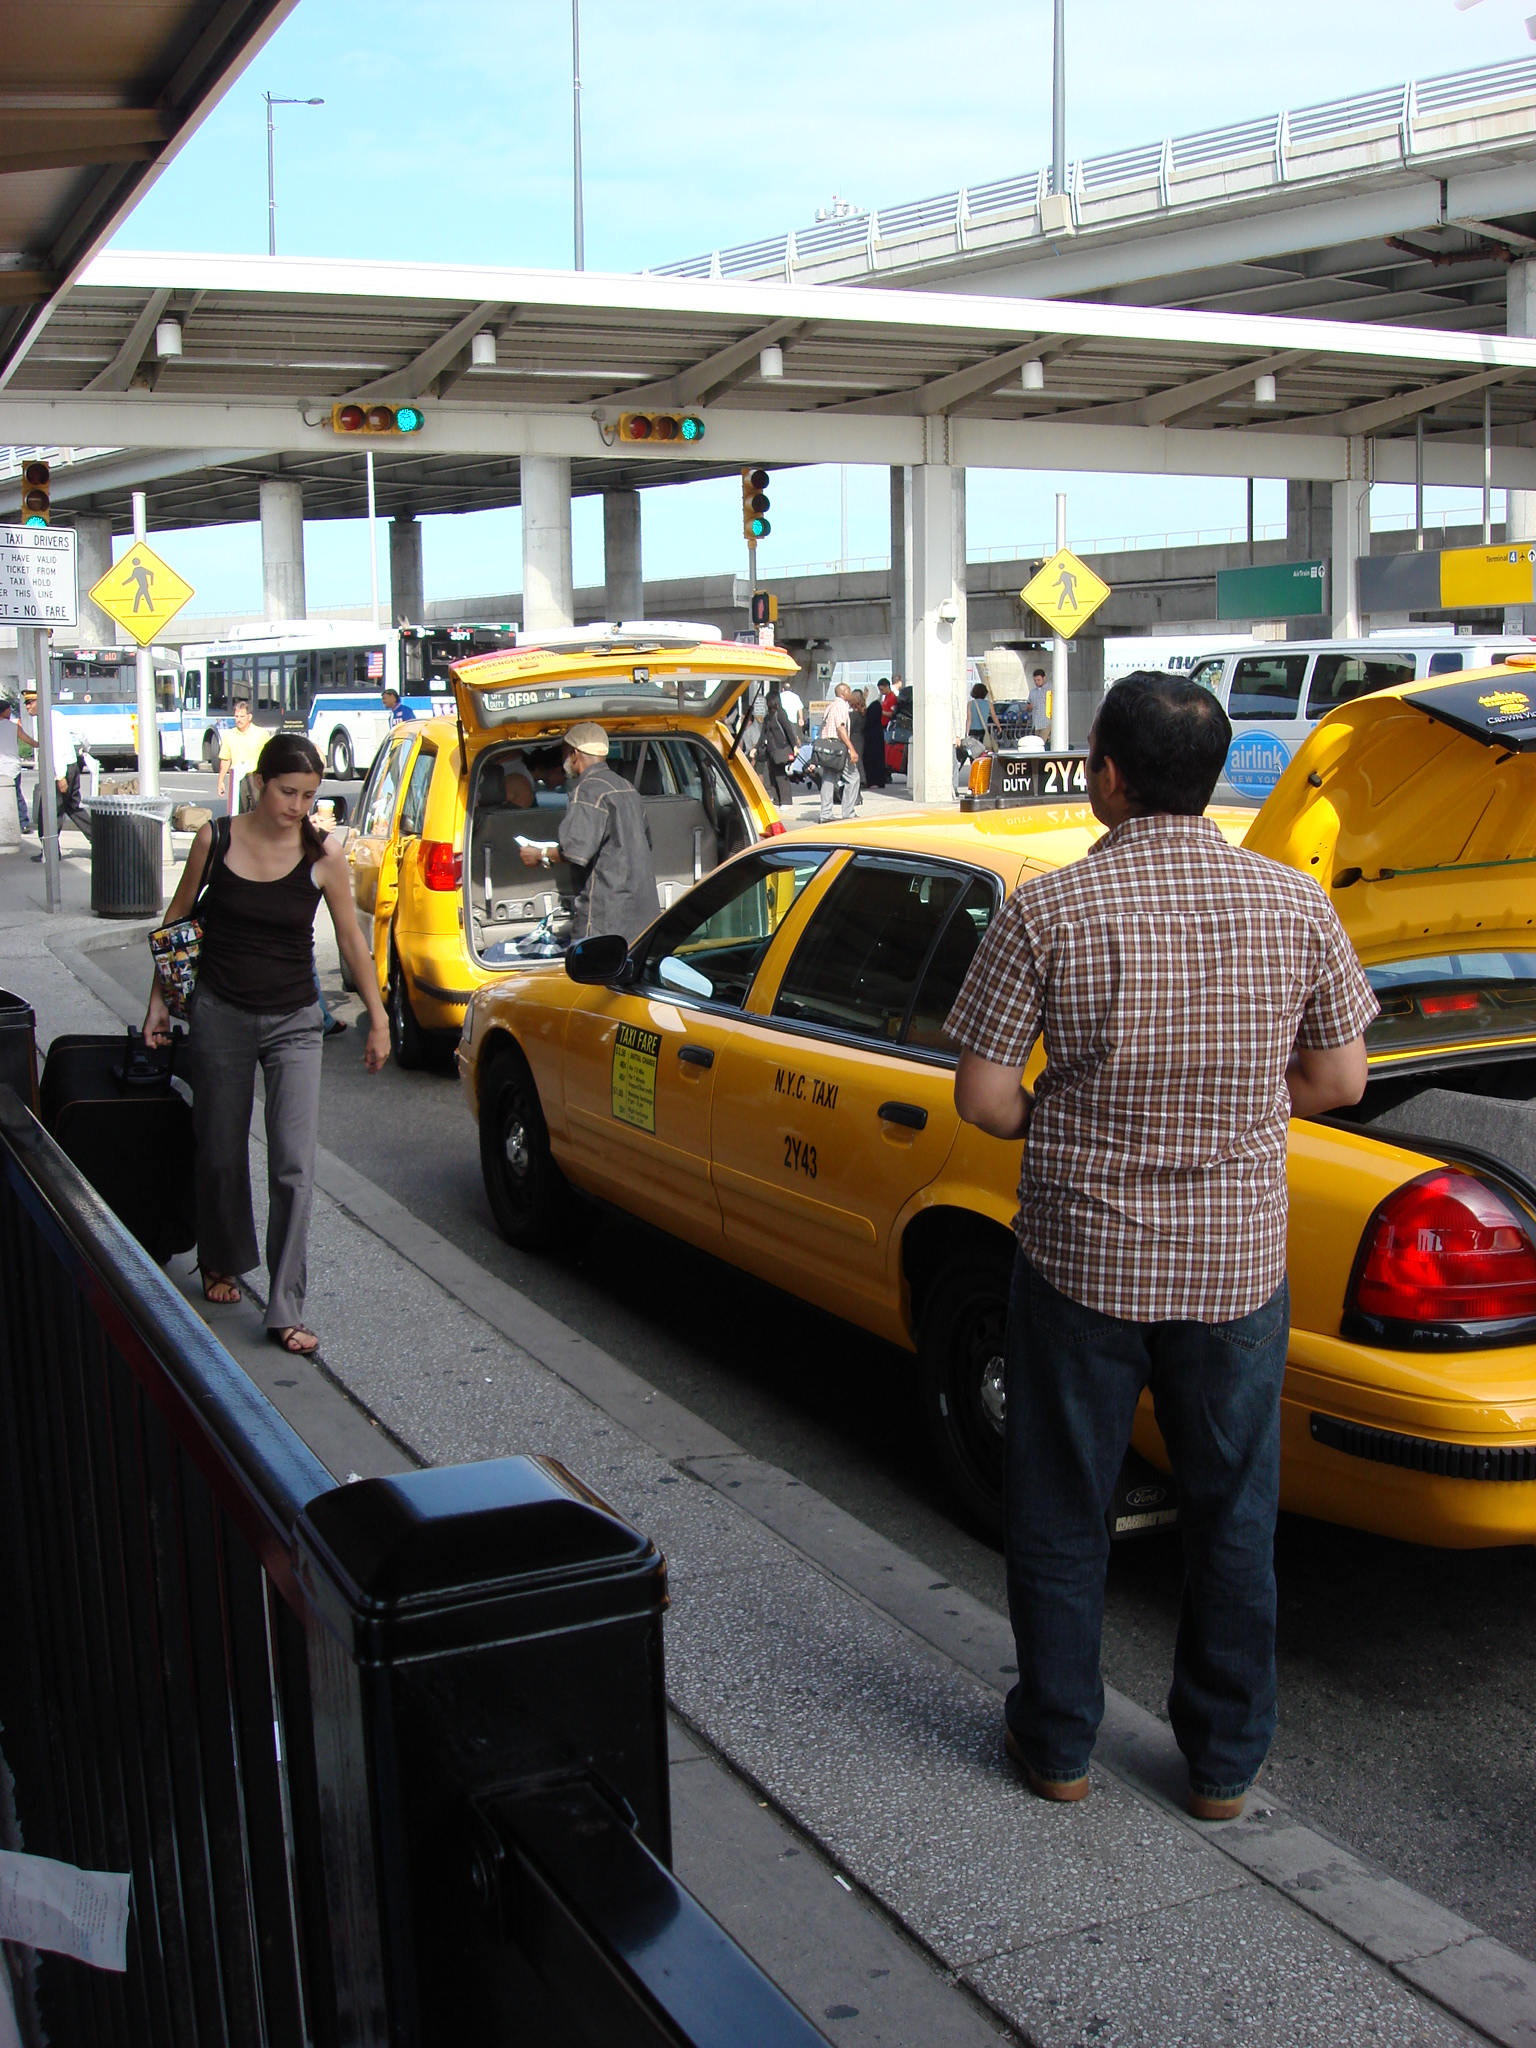 Waiting for a Taxi (JFK Airport - New York).jpg